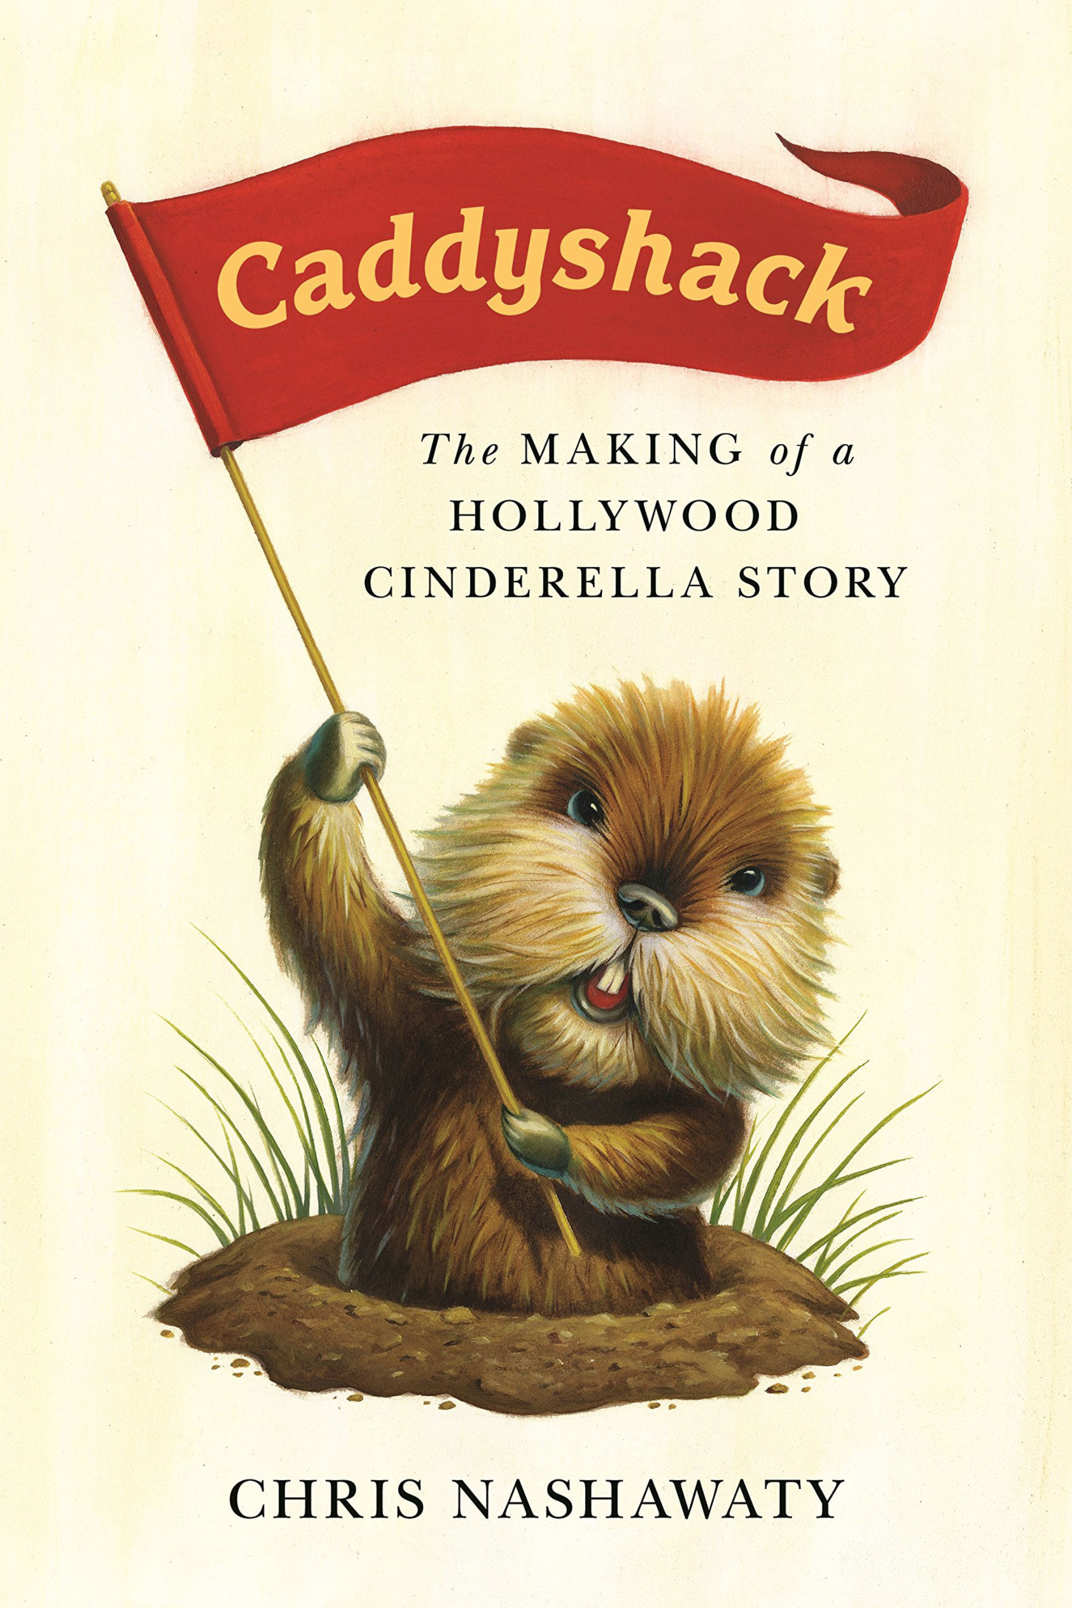 Caddyshack by Chris Nashawaty